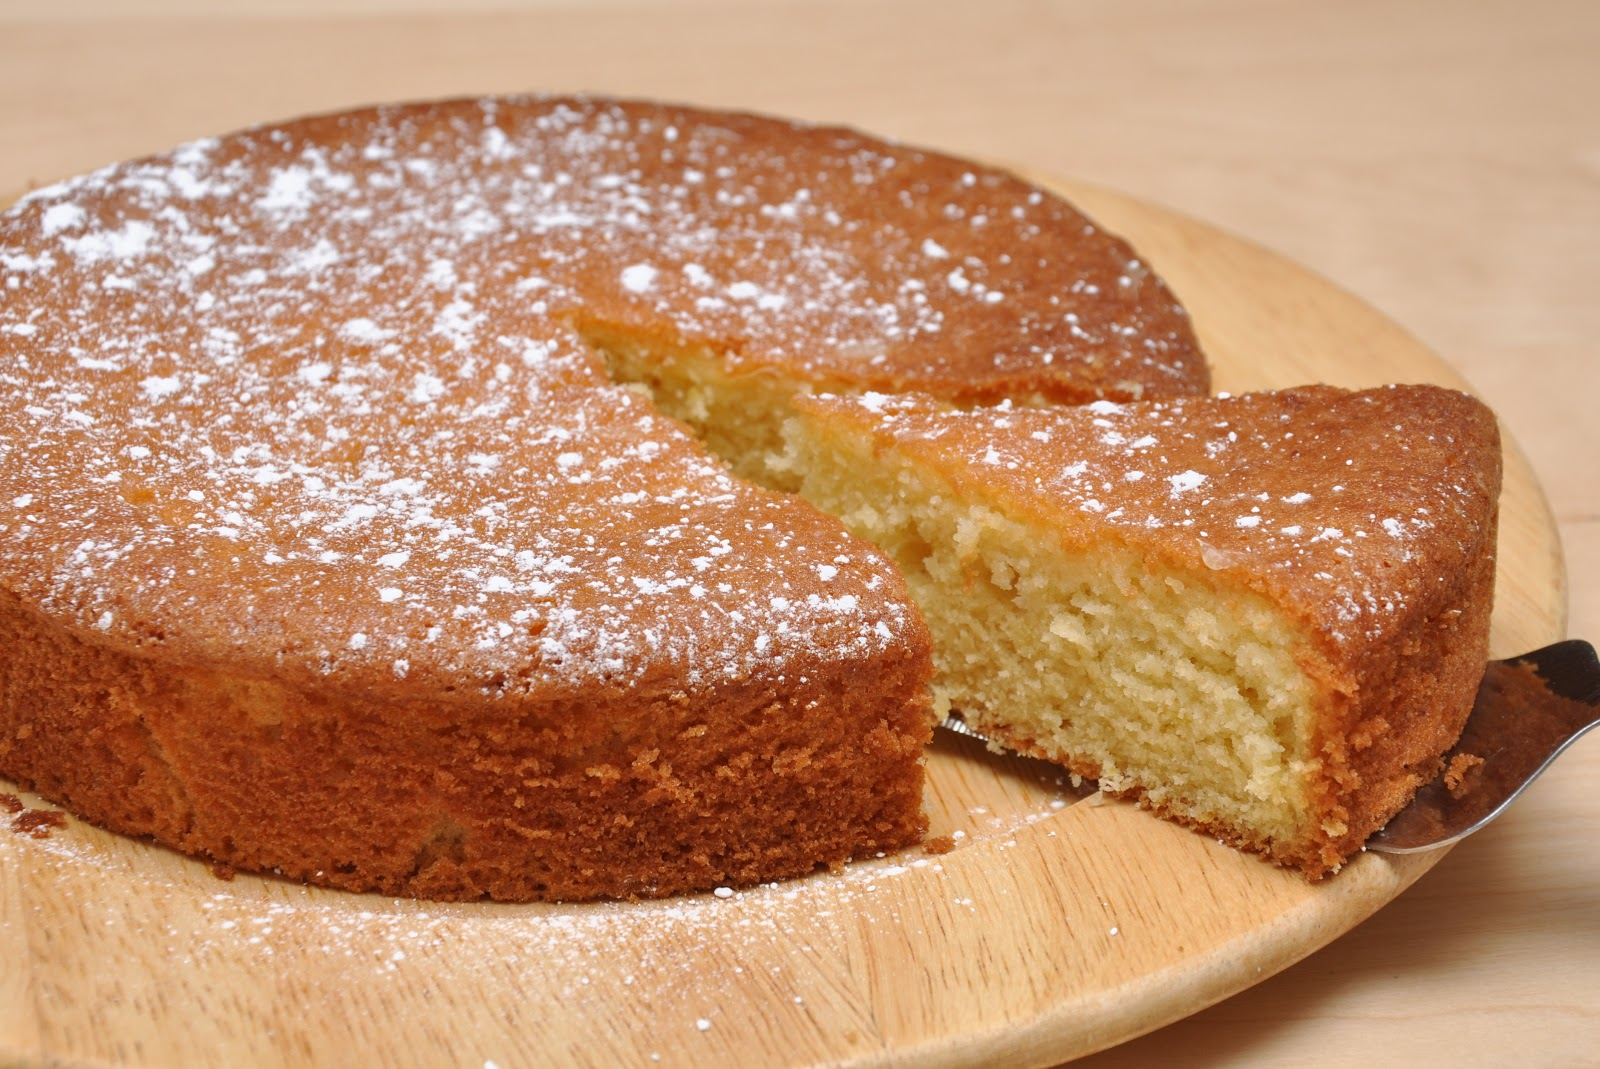 Low Fat Cake Mix Recipes: Kyoko.B Bakes: Low-Fat Lemon Cake: Lemon Drizzle Cake